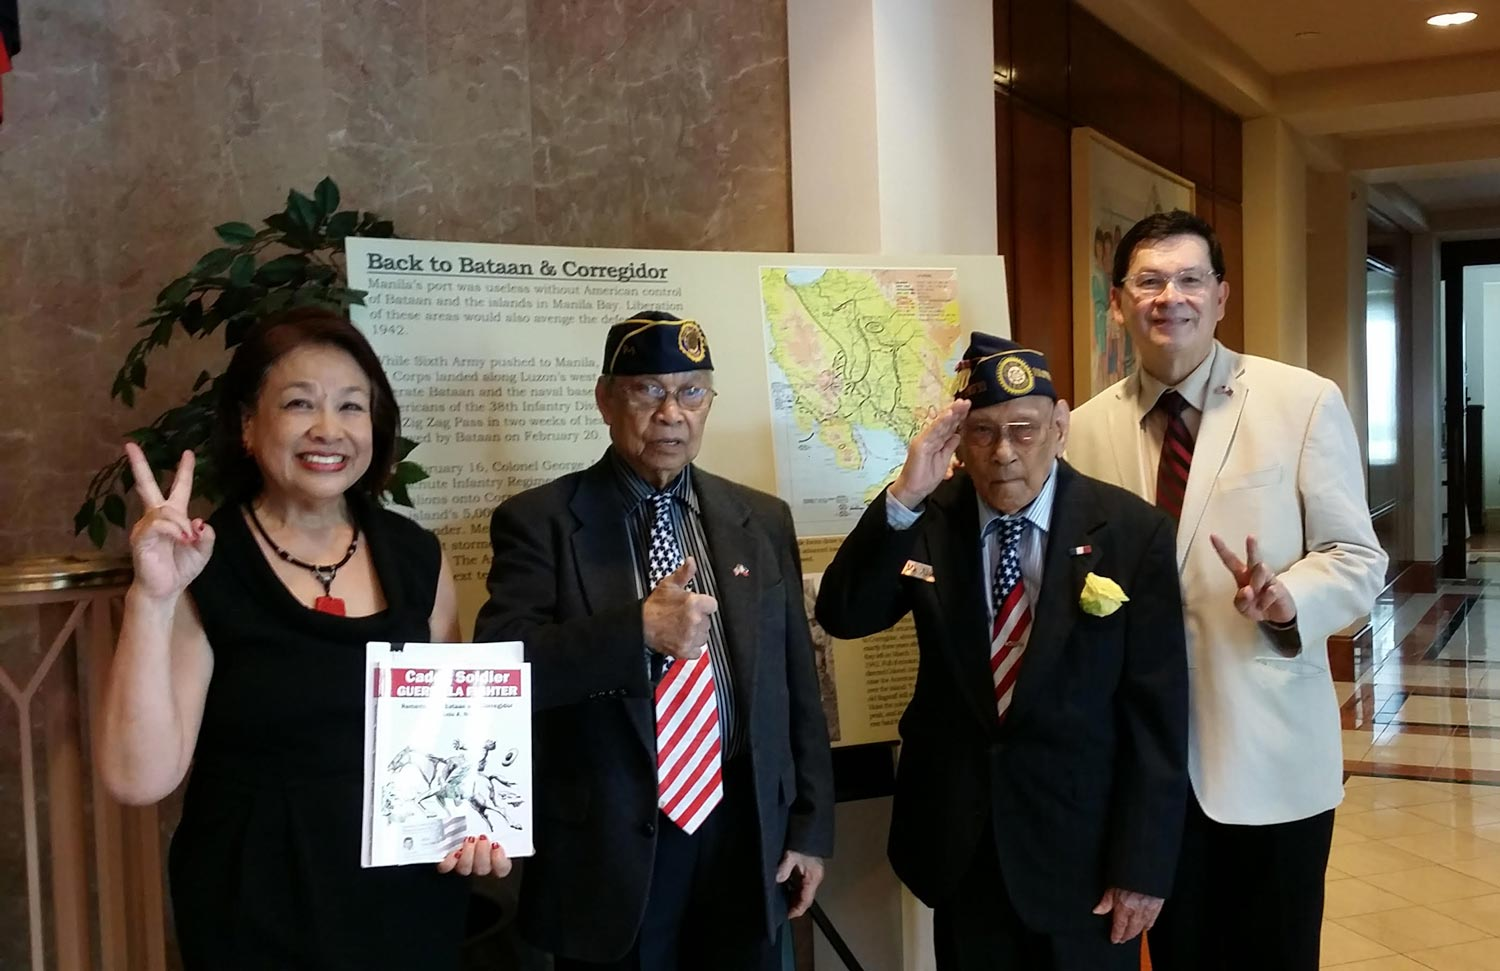 """Celestino Almeda, 99, USAFFE veteran and Rudy Panaglima, 87, Recognized Filipino guerrilla who joined the resistance as a 14-year-old, attend the book launch of Cadet, Soldier, Guerrilla Fighter at the Philippine Embassy in Washington DC, with book editor Pepi Nieva, and Eric Lachica of The Filipino Veterans Recognition and Education project (FilvetsRep). Donate $20 or more to the FilvetsRep and receive a copy of """"Cadet, Soldier, Guerrilla Fighter"""" through the month of June. Donations will help veterans receive the US Congressional Gold Medal recognizing their service."""